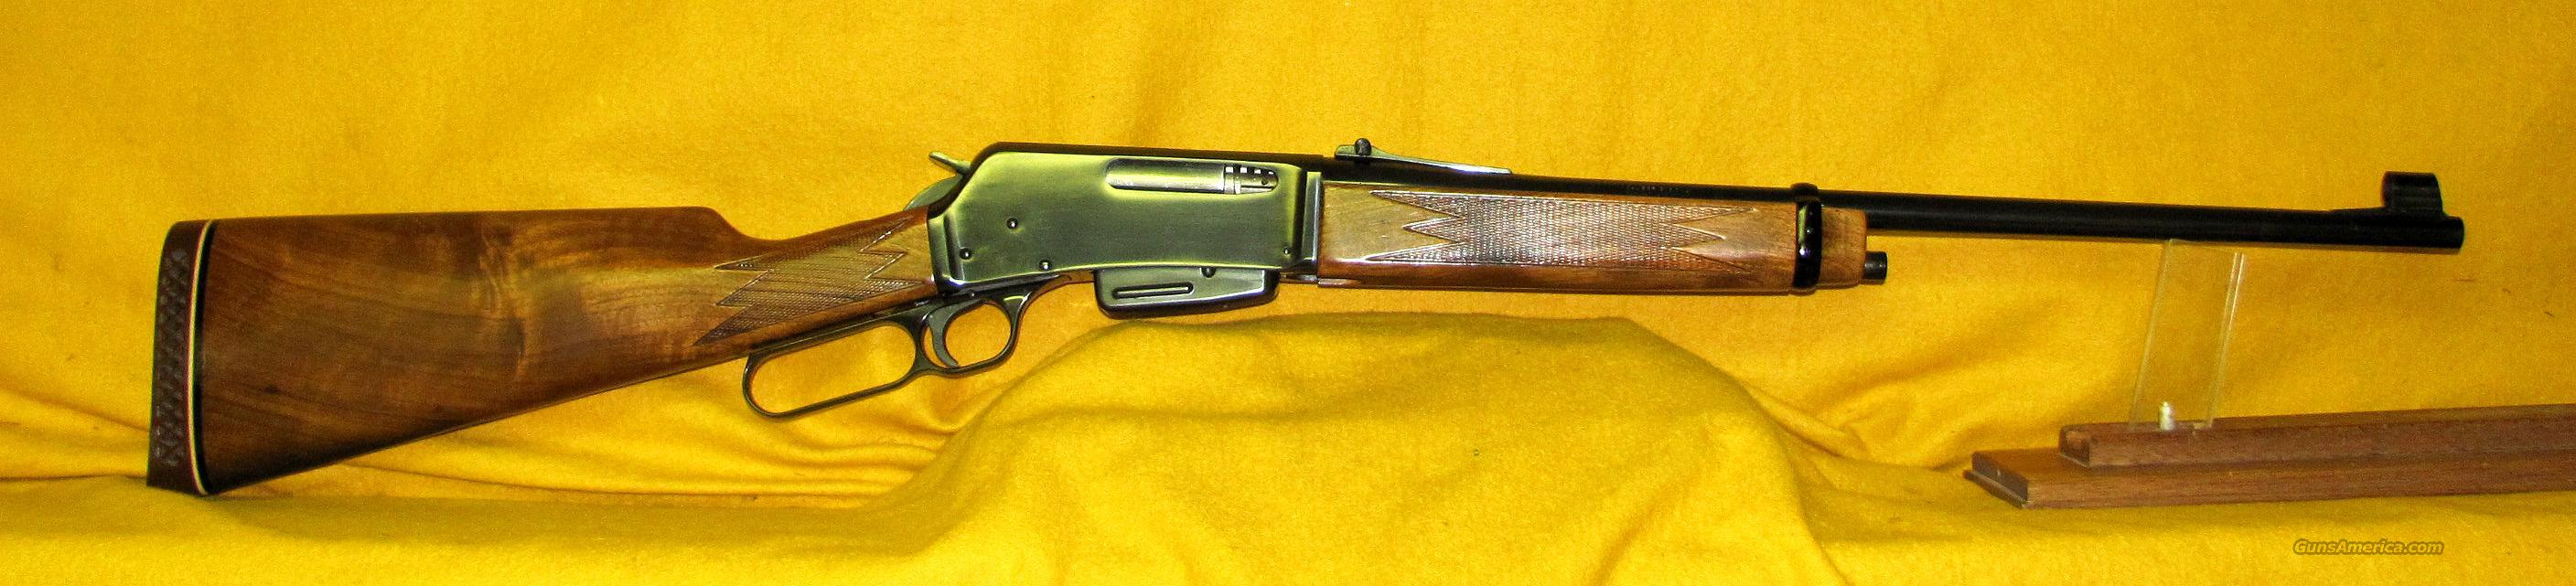 BROWNING ( MADE IN BELGIUM ) BLR  Guns > Rifles > Browning Rifles > Lever Action